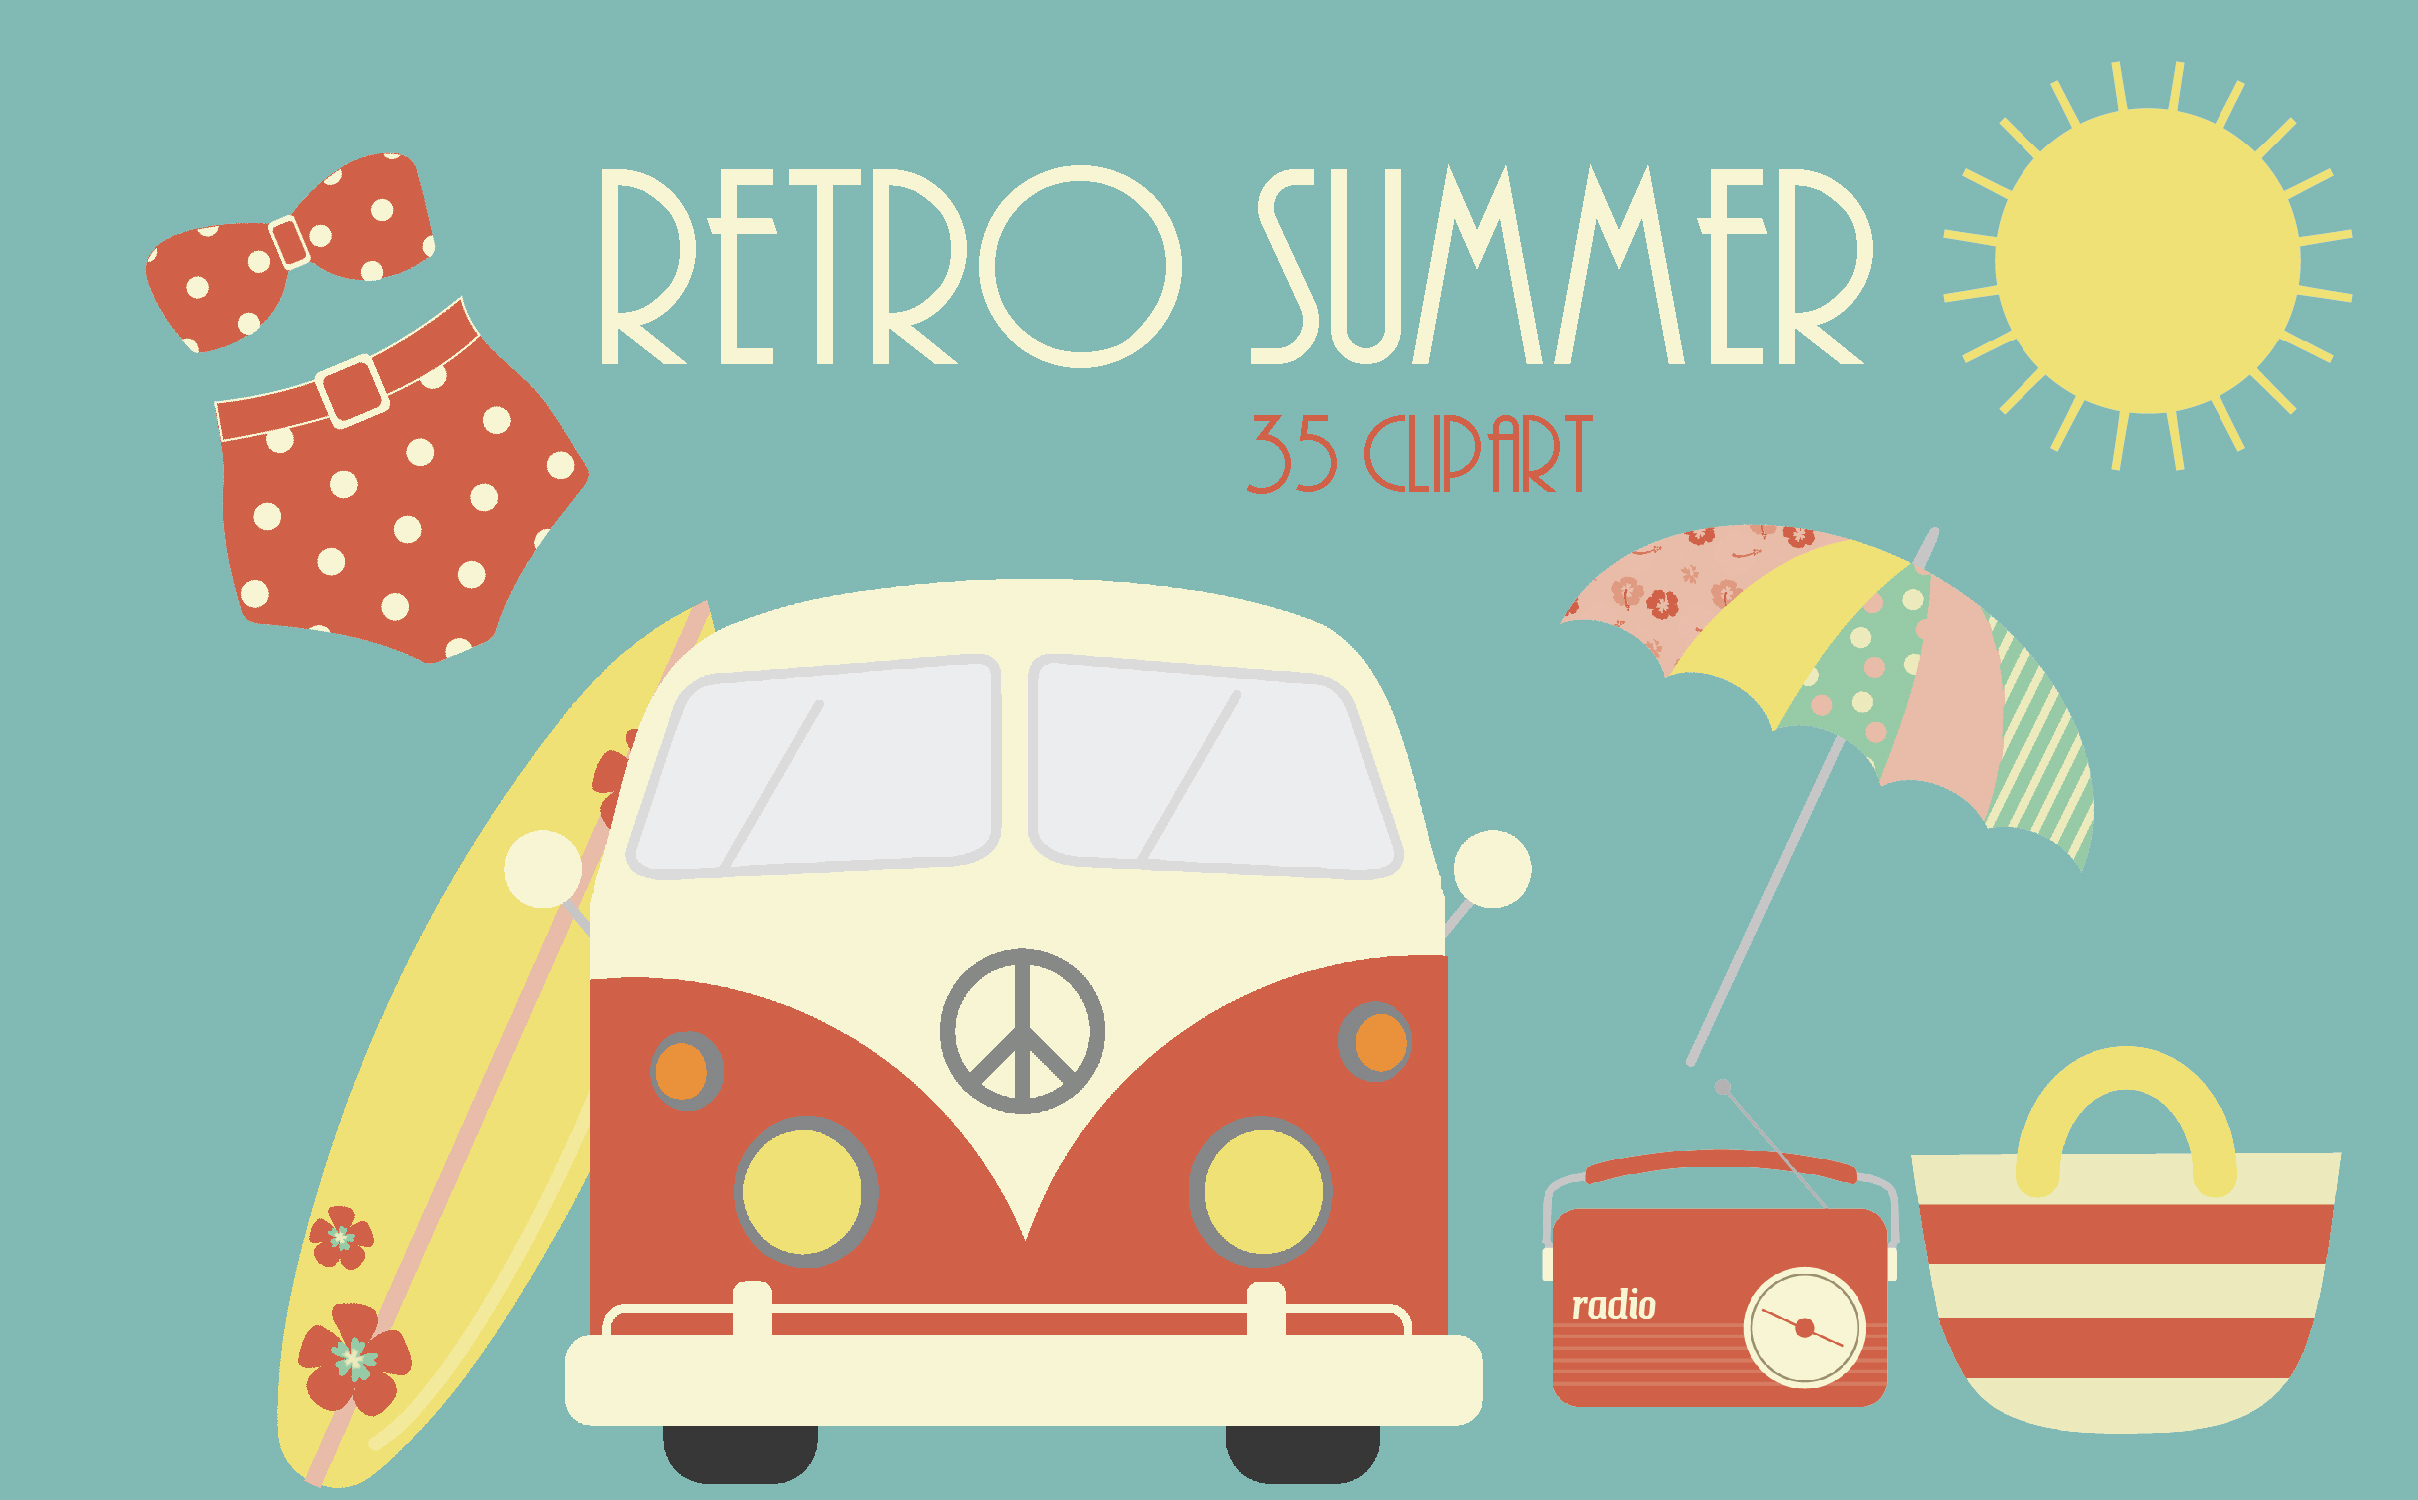 Download Free Retro Summer Graphic By Poppymoondesign Creative Fabrica for Cricut Explore, Silhouette and other cutting machines.